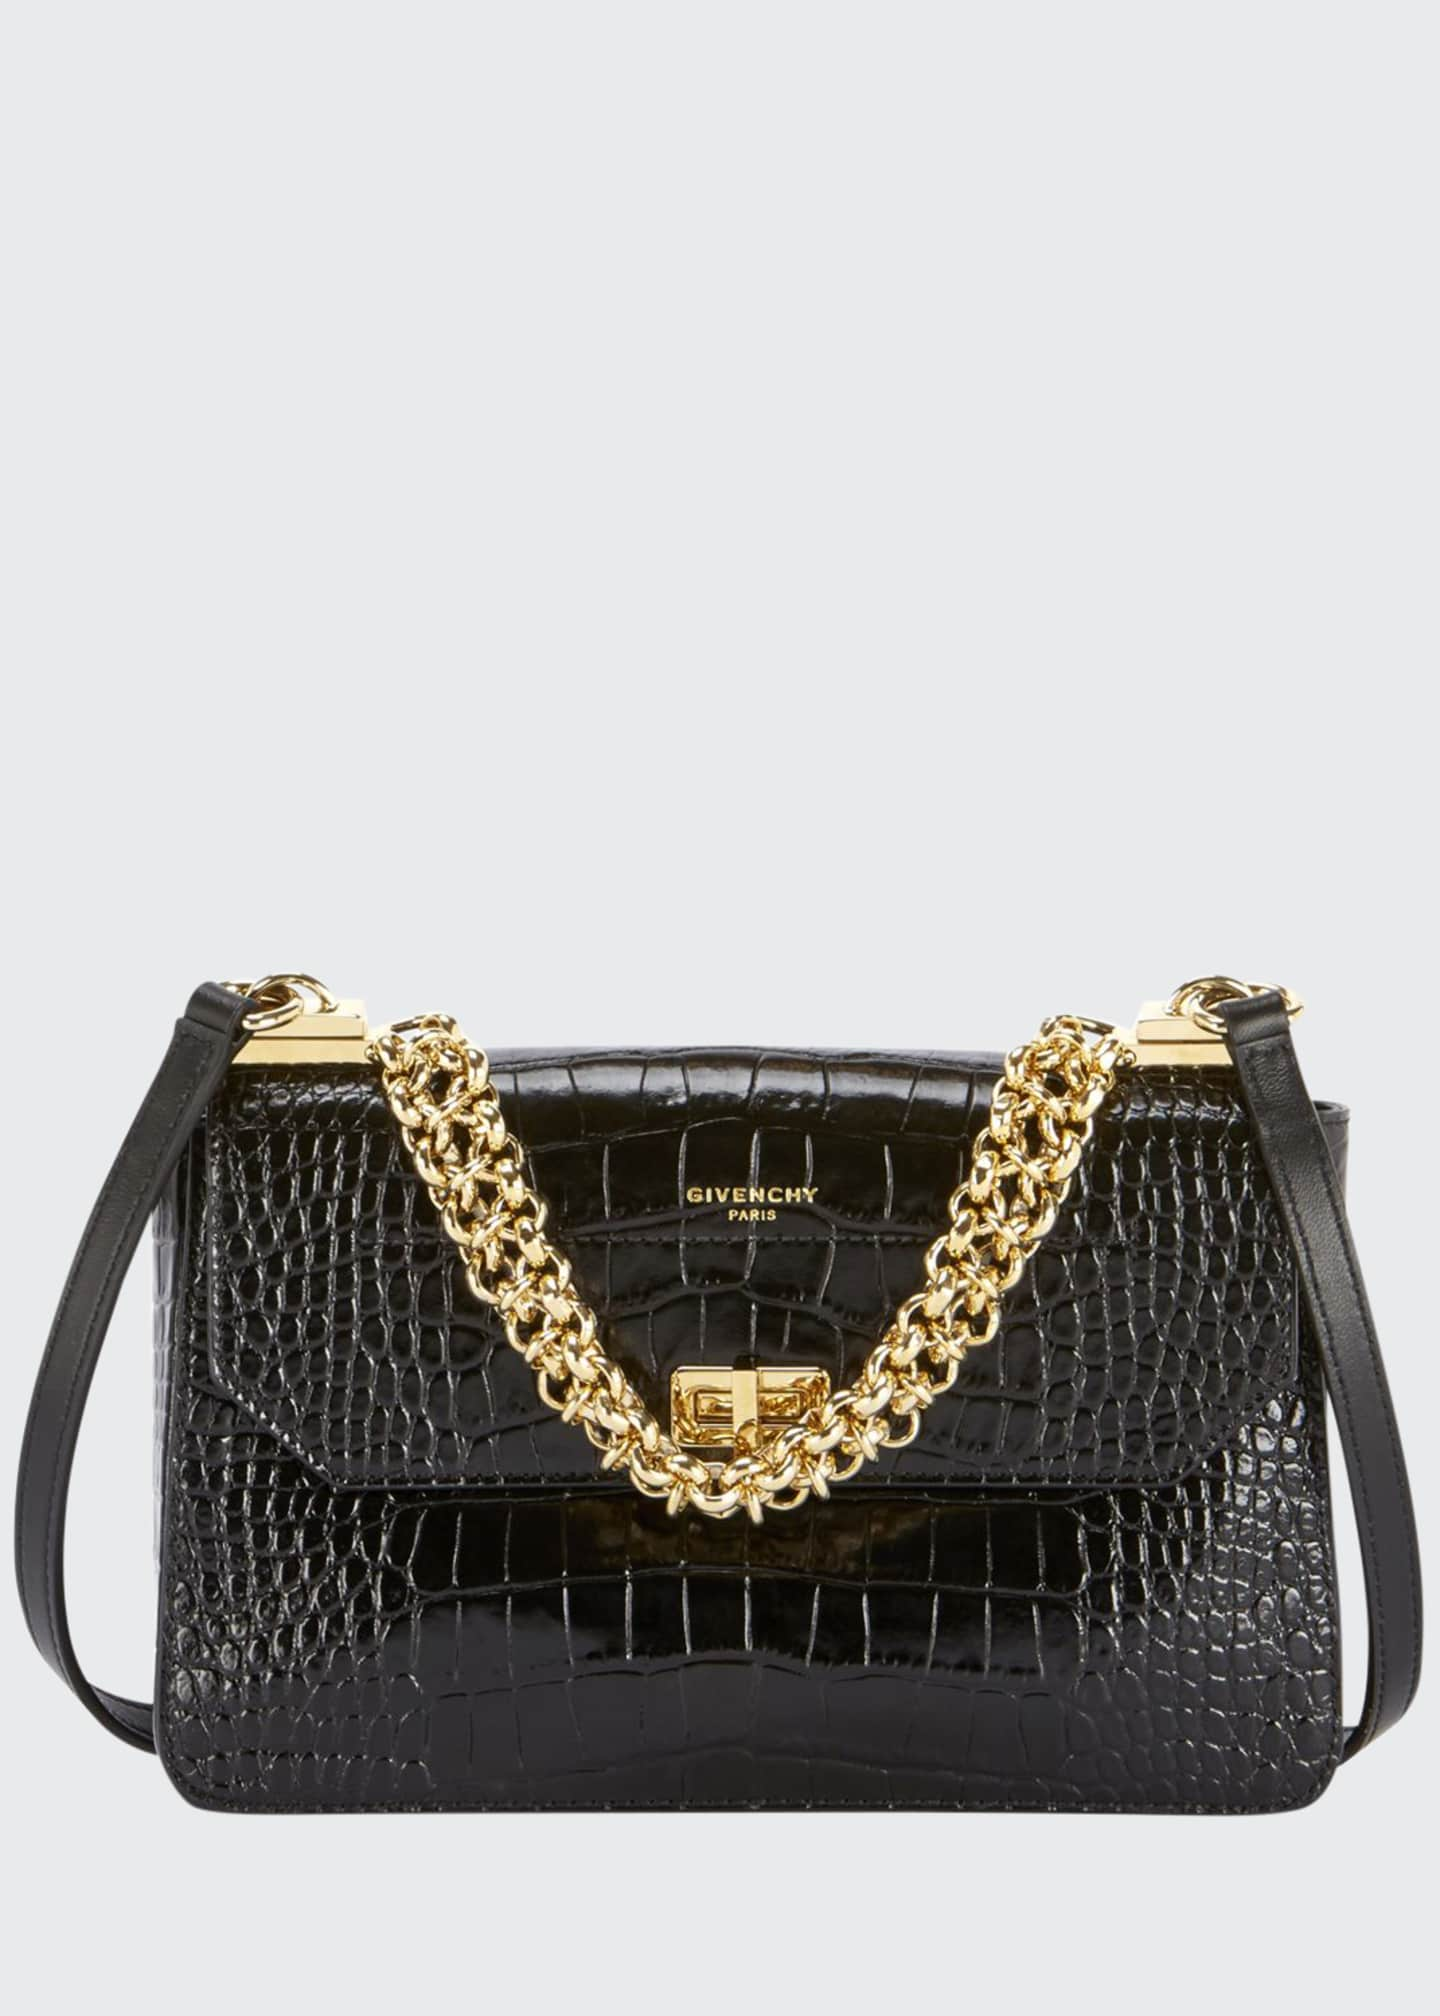 Givenchy Catena Small Crocodile Shoulder Bag